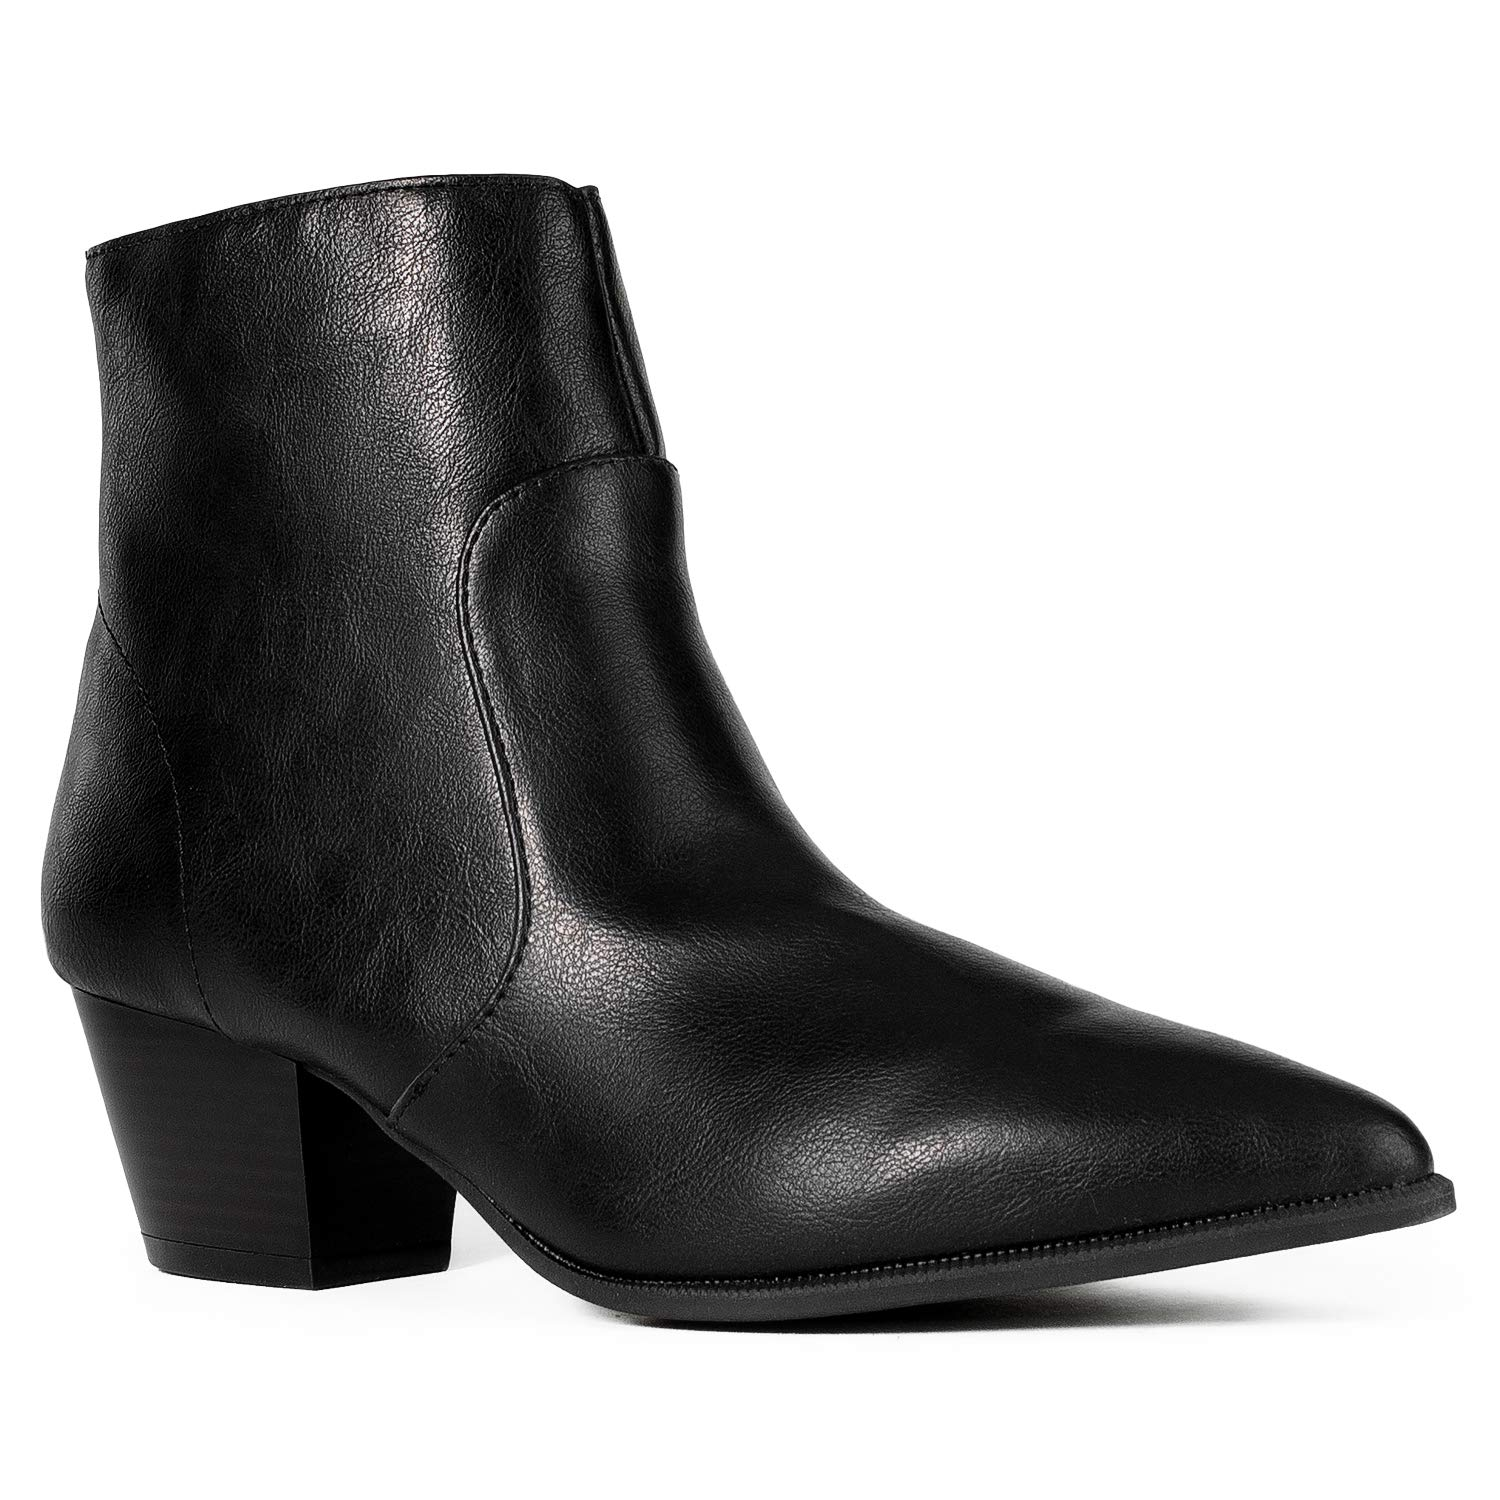 Black Pu RF ROOM OF FASHION Women's Western Pointy Toe Low Chunky Heel Back Zip Slim Fit Ankle Booties